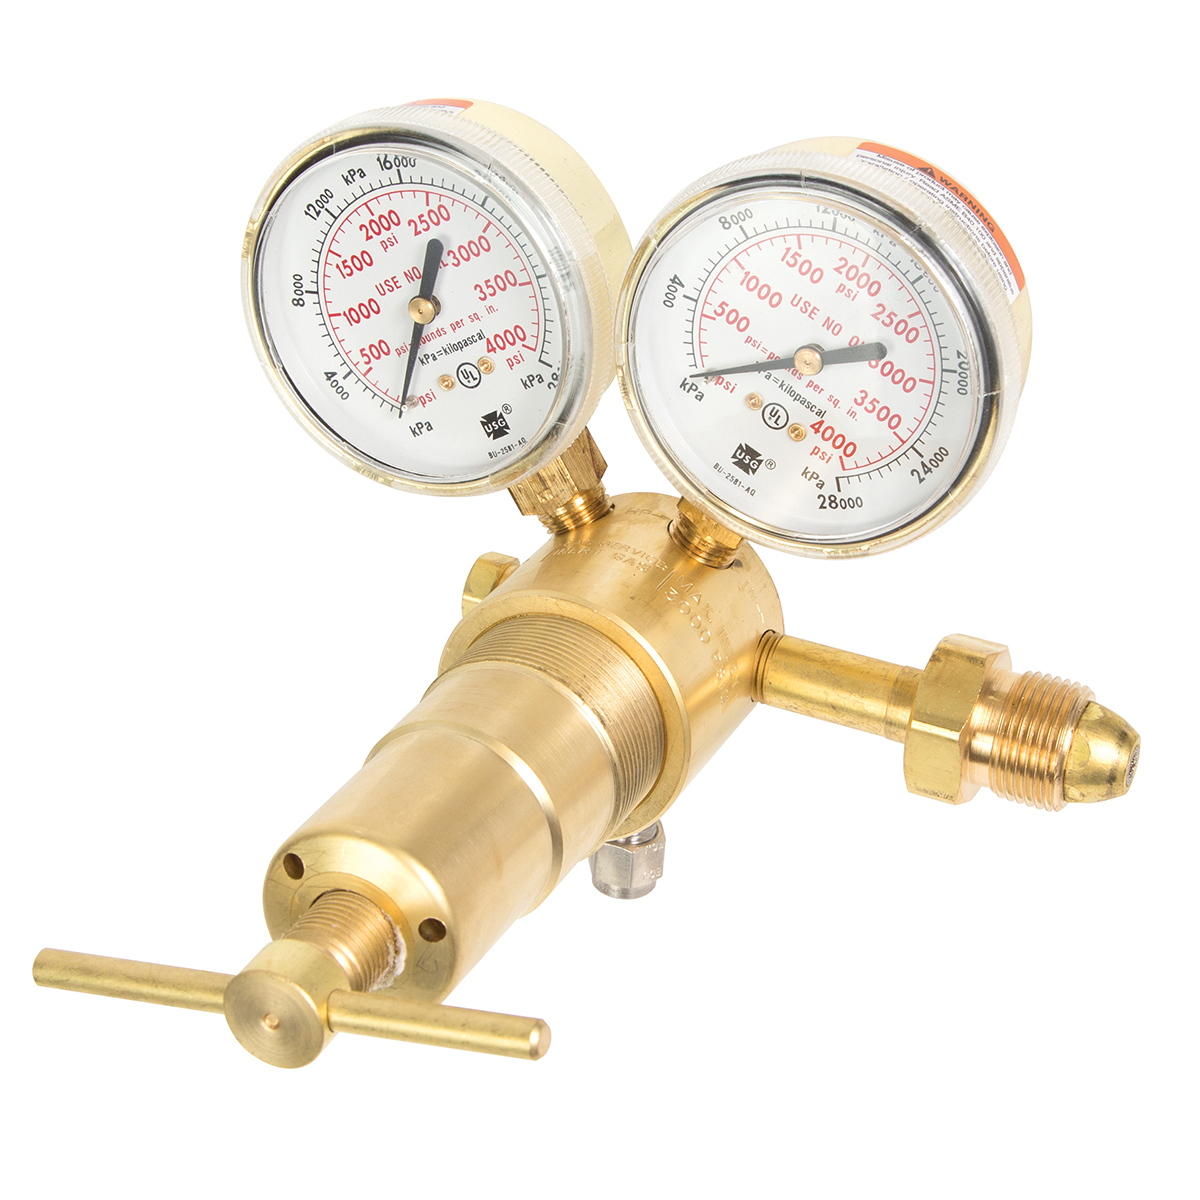 Industrial Gas Regulators Market Manufacturers Focus on Performance and Portability of Products for Innovation Forecast to 2031